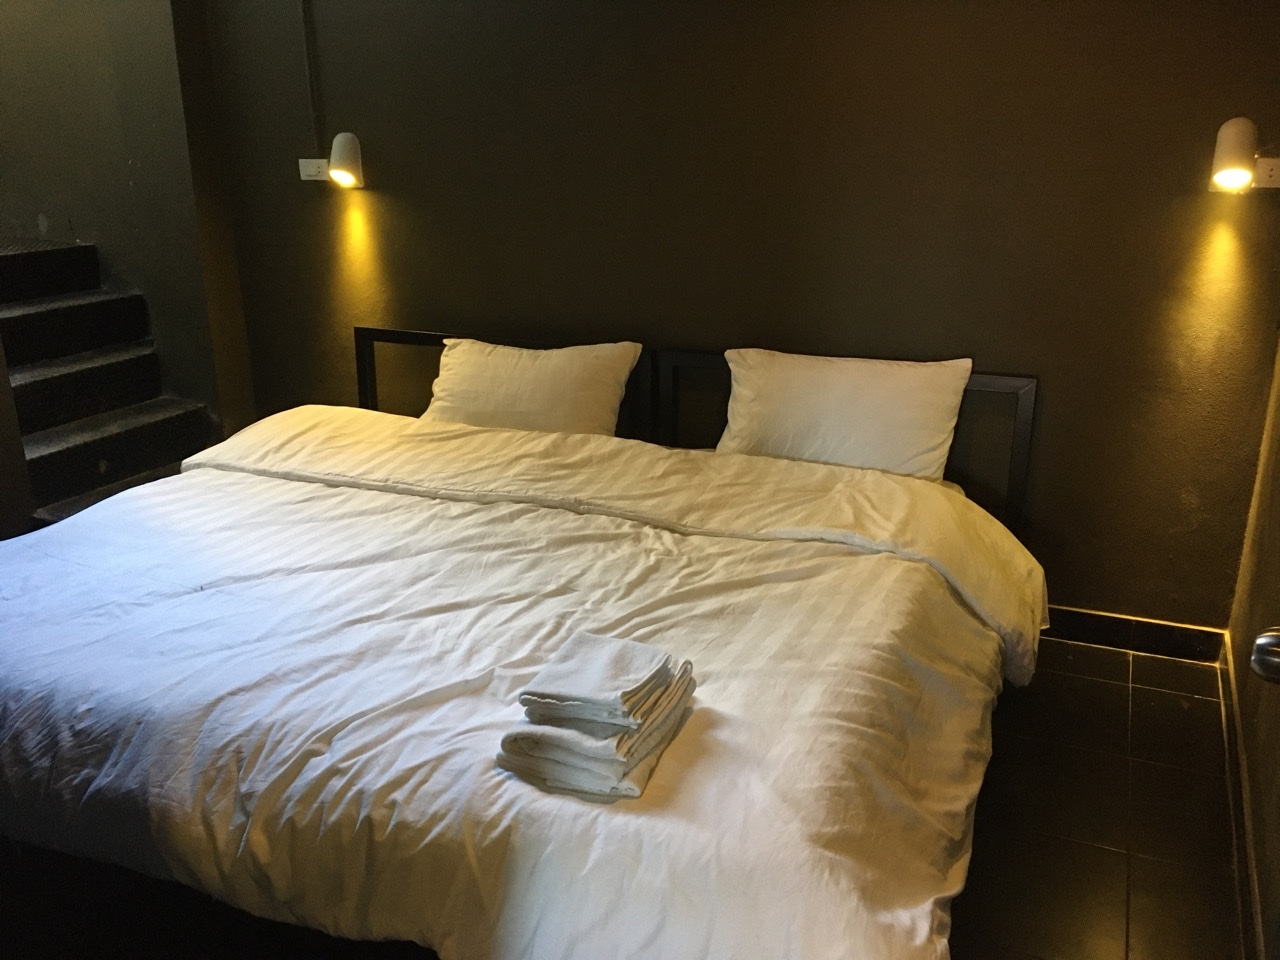 Triple Bed Standard Room (1 King Bed and 1 Single Bed Room)(No.4)